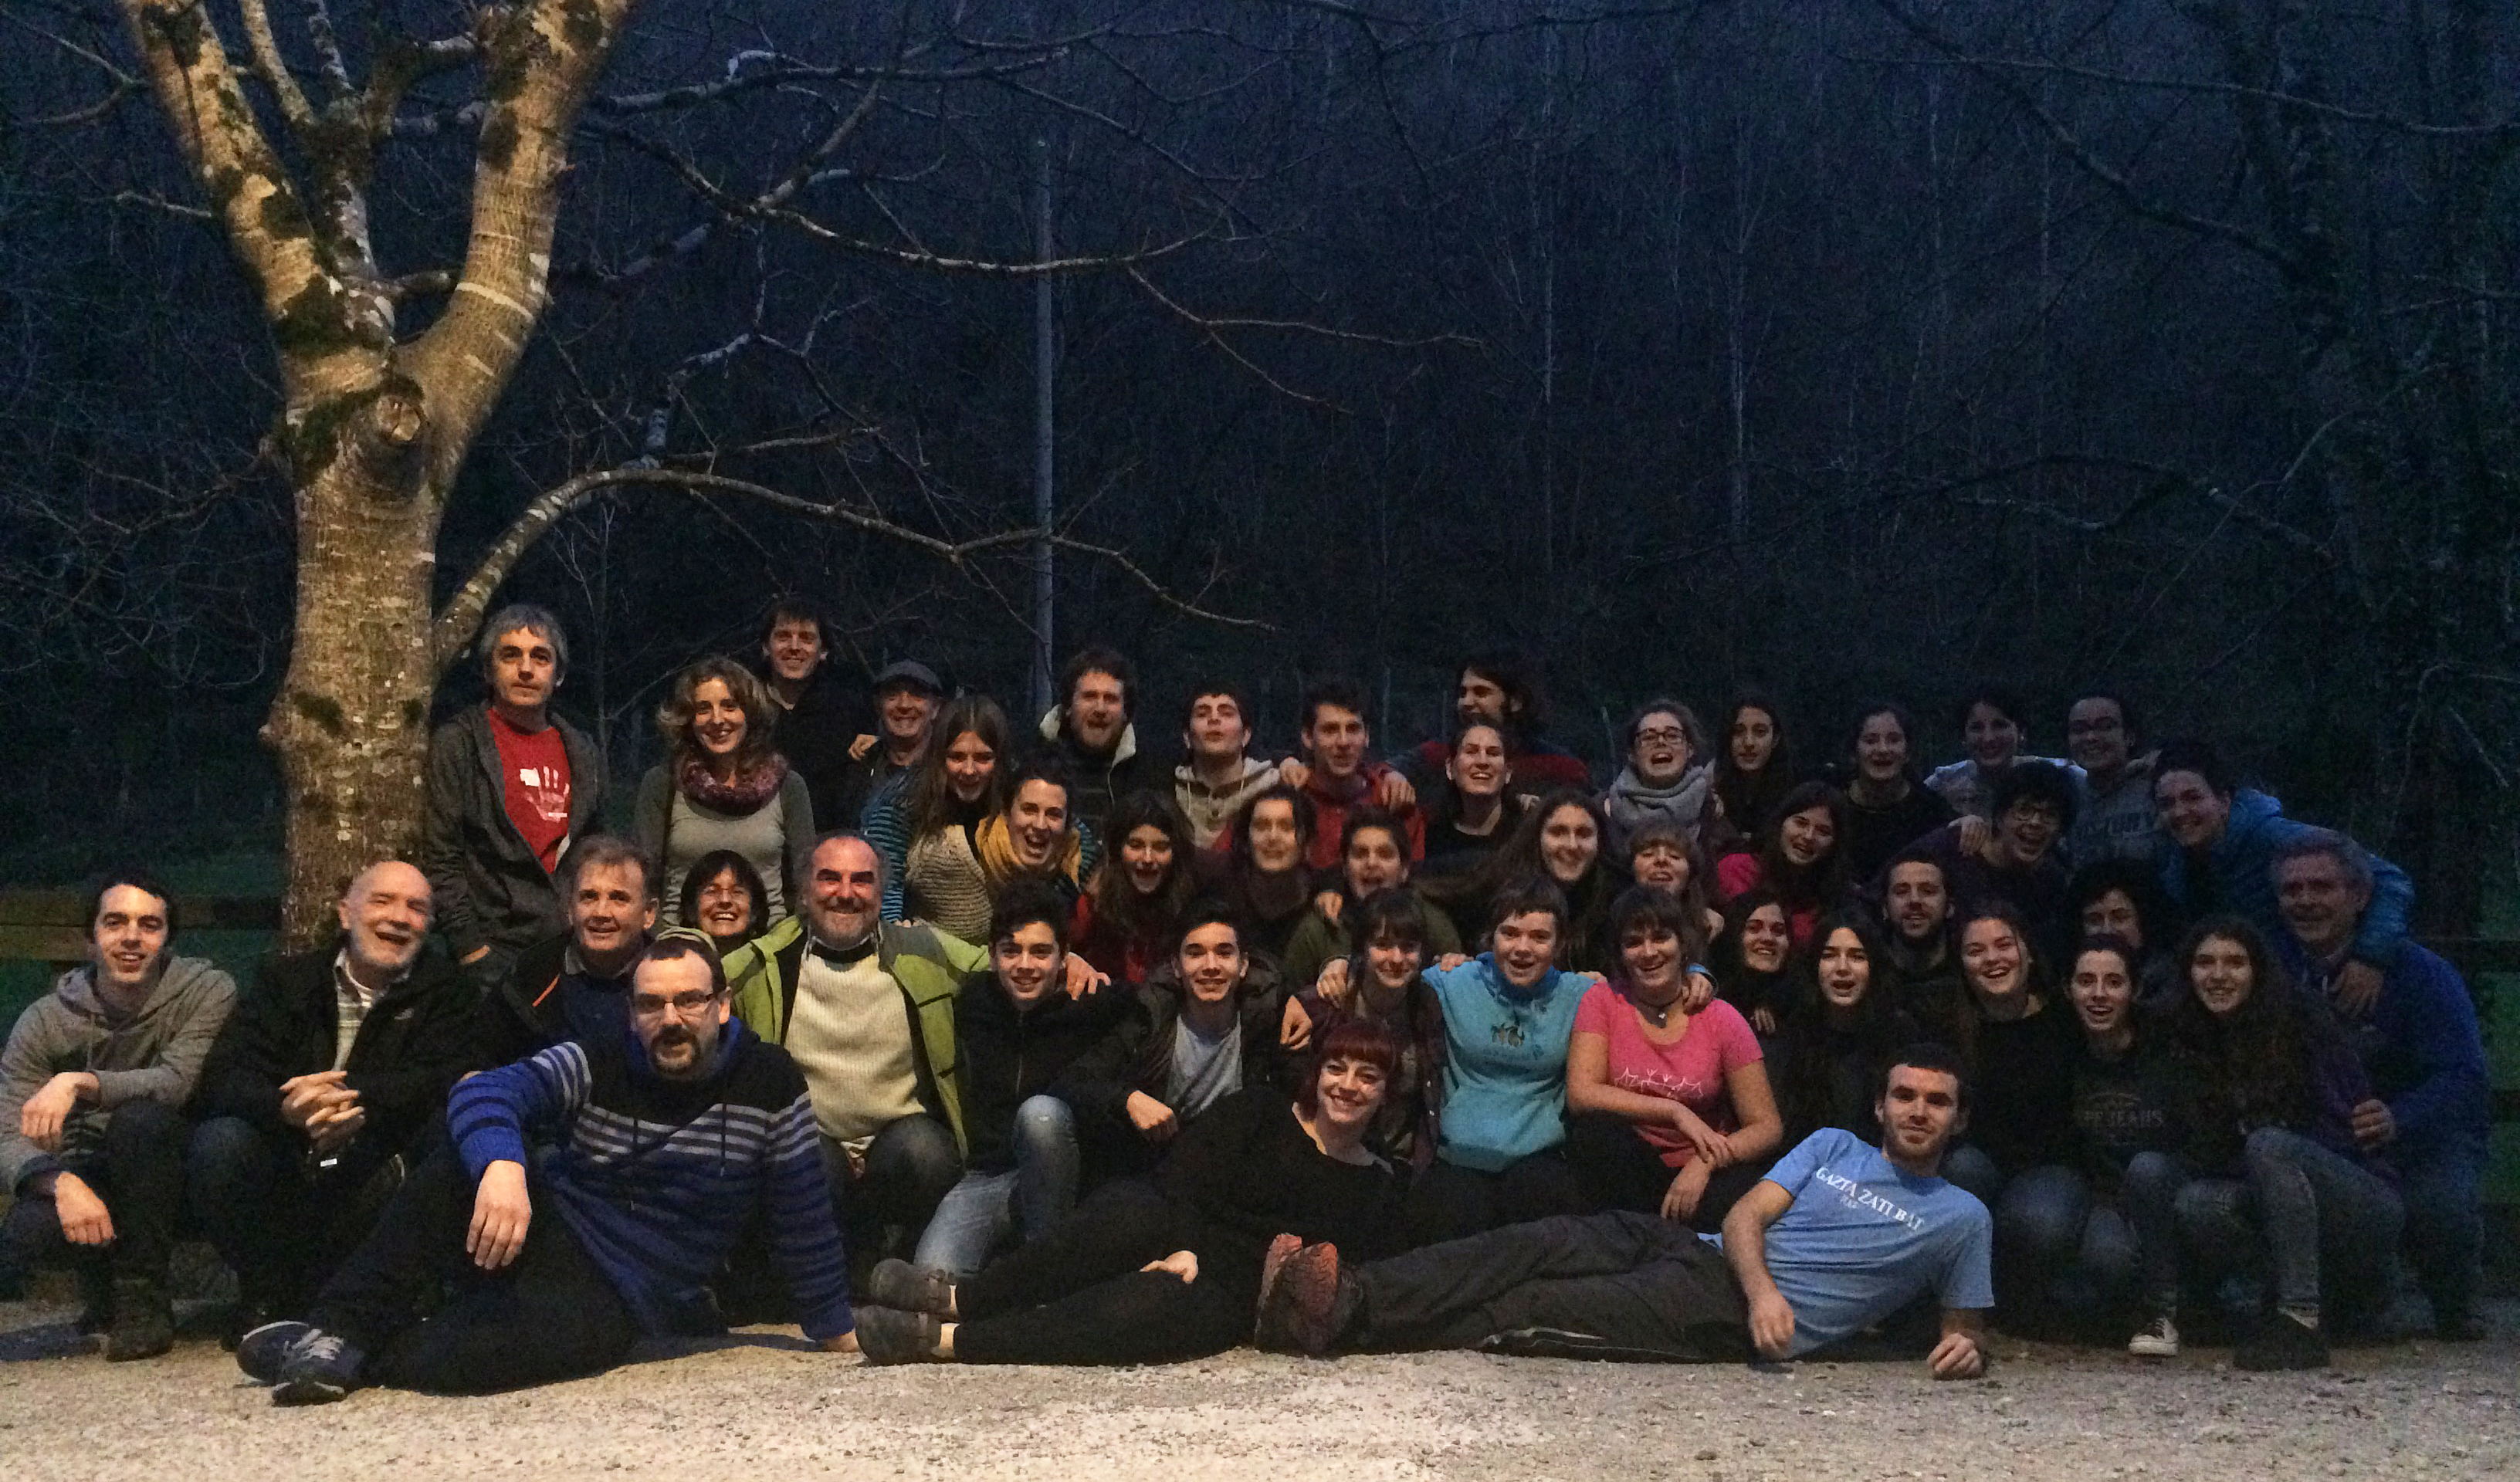 Mintzola will bid farewell to this year at the creative workshop Ahots baten